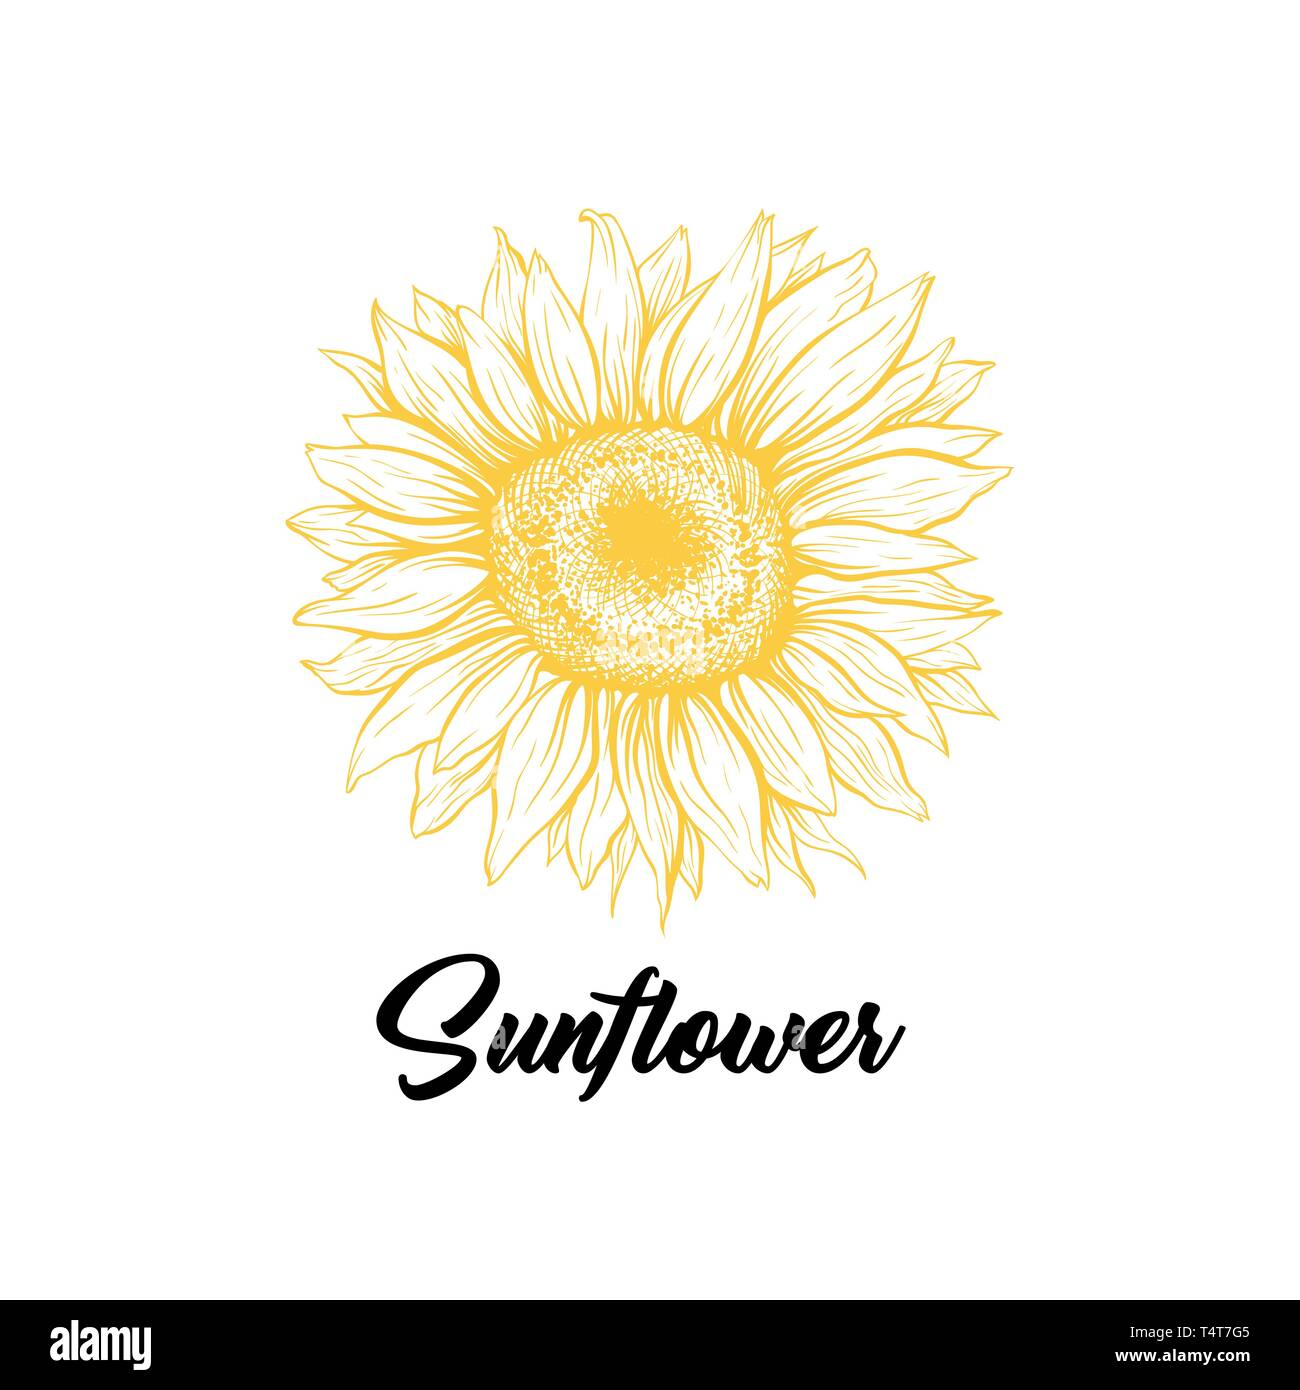 Sunflower Yellow Blooming Sketch Illustration Summer Flower With Black Calligraphy Helianthus Outline Logo Drawing Floral Botanical Isolated Clipart Eco Farming Logotype Design Vector Idea Stock Vector Image Art Alamy